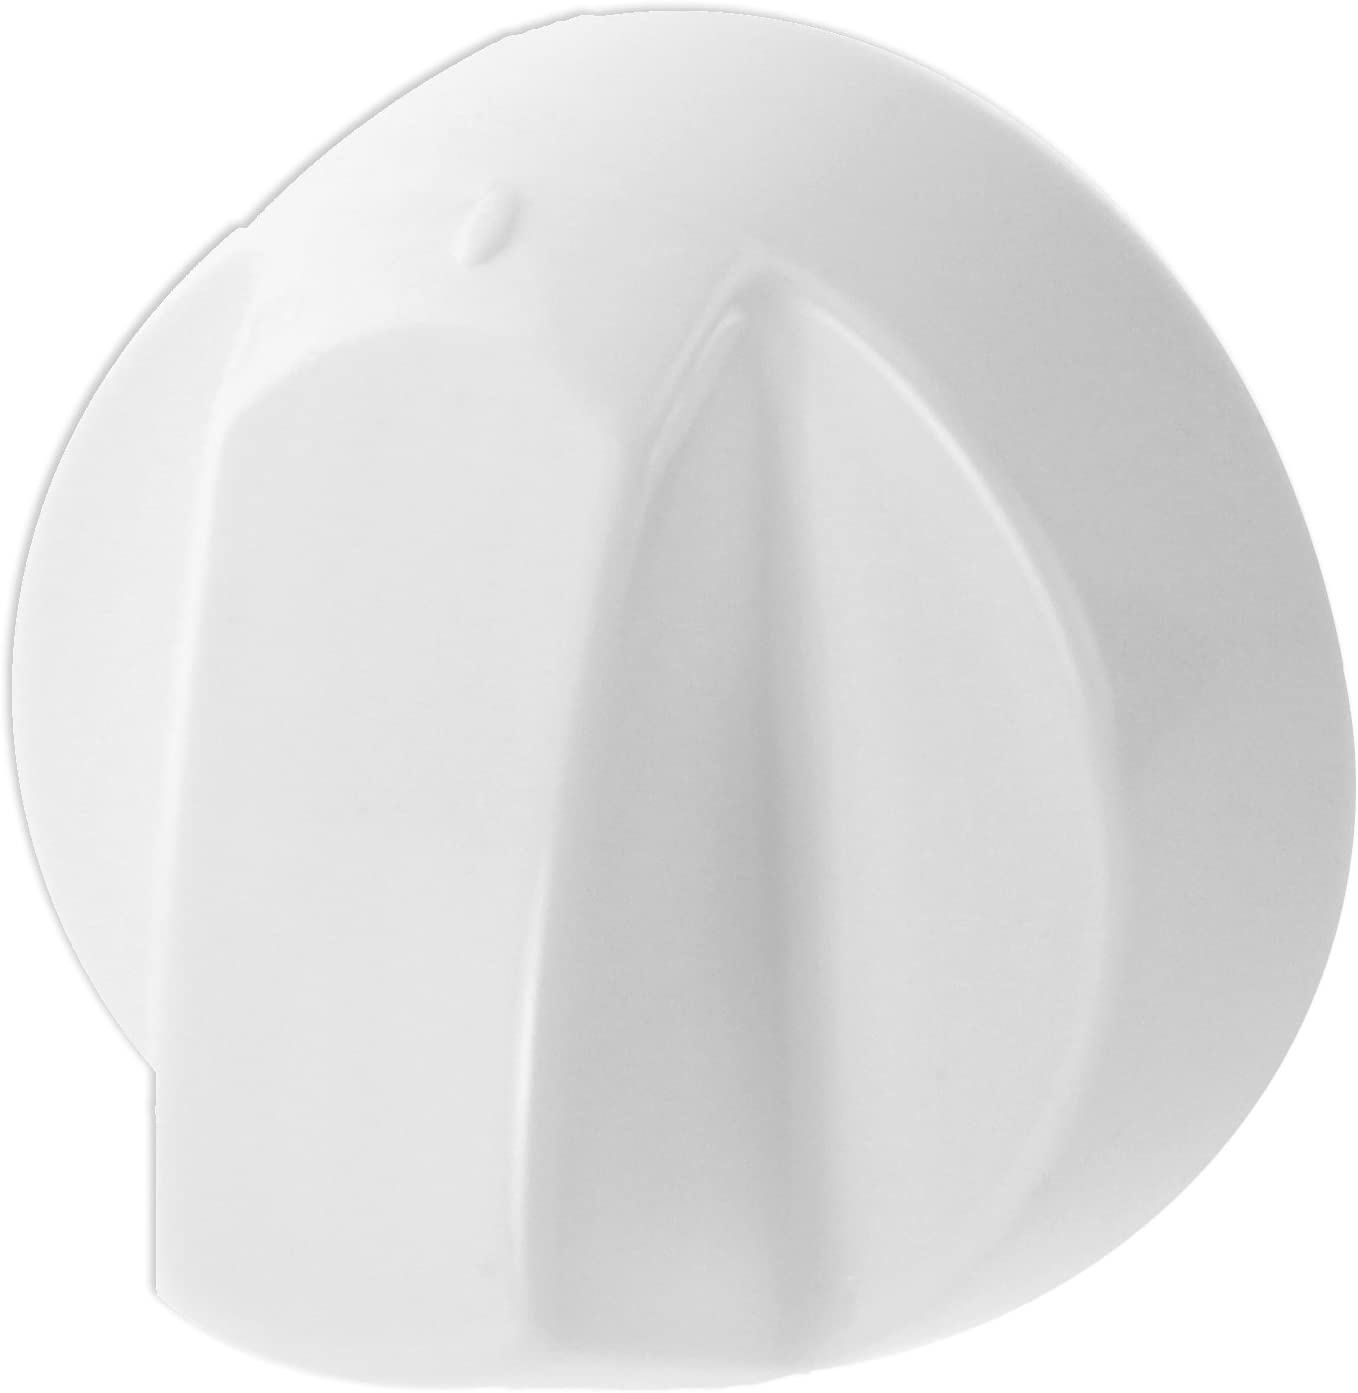 Spares2go White Control Knobs For Rangemaster Oven Cooker & Hob (Pack Of 1 + 4 Adaptors)